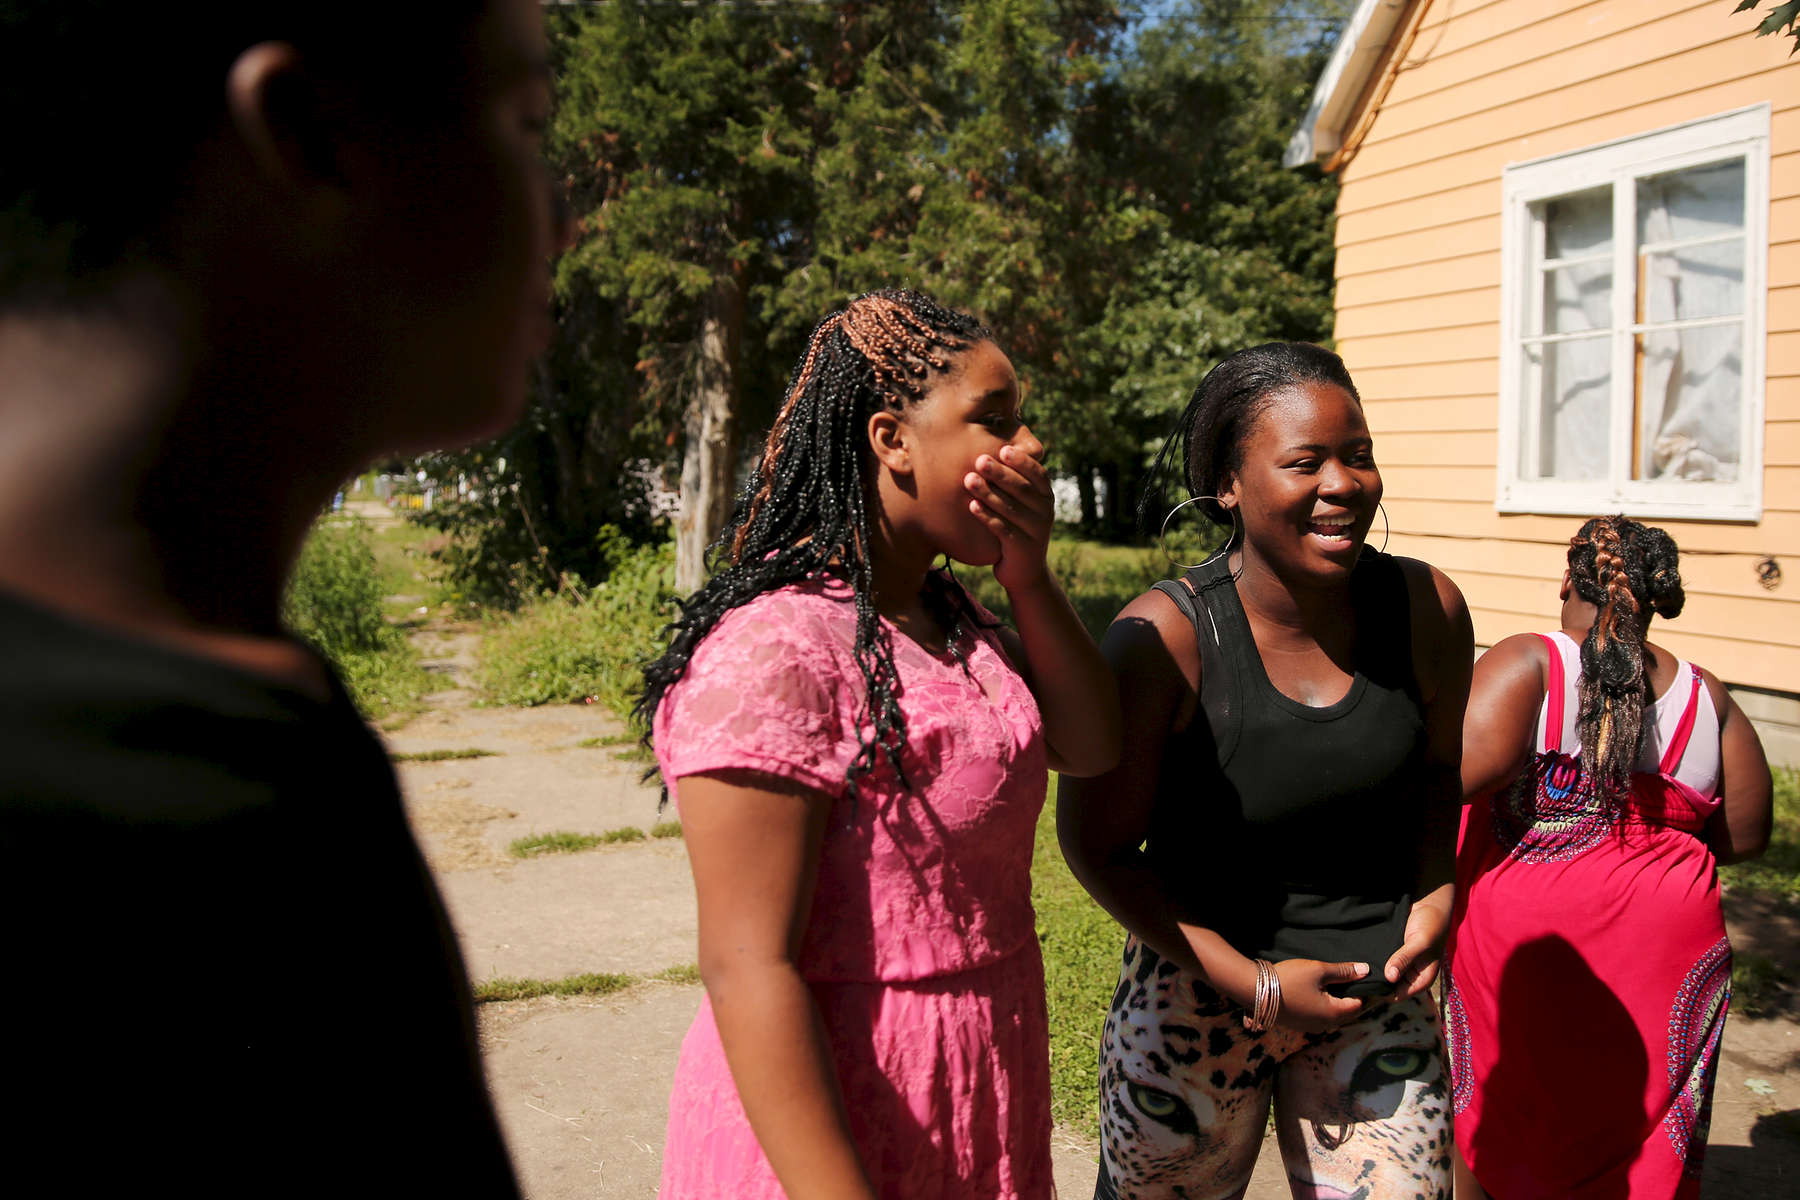 Cleanna Parker-Lewis, a former resident of Rock River Academy, at right, laughs with her cousins in Peoria, Ill. The state Department of Children and Family Services took protective custody of her when she was 6 months old, following abuse and neglect allegations.